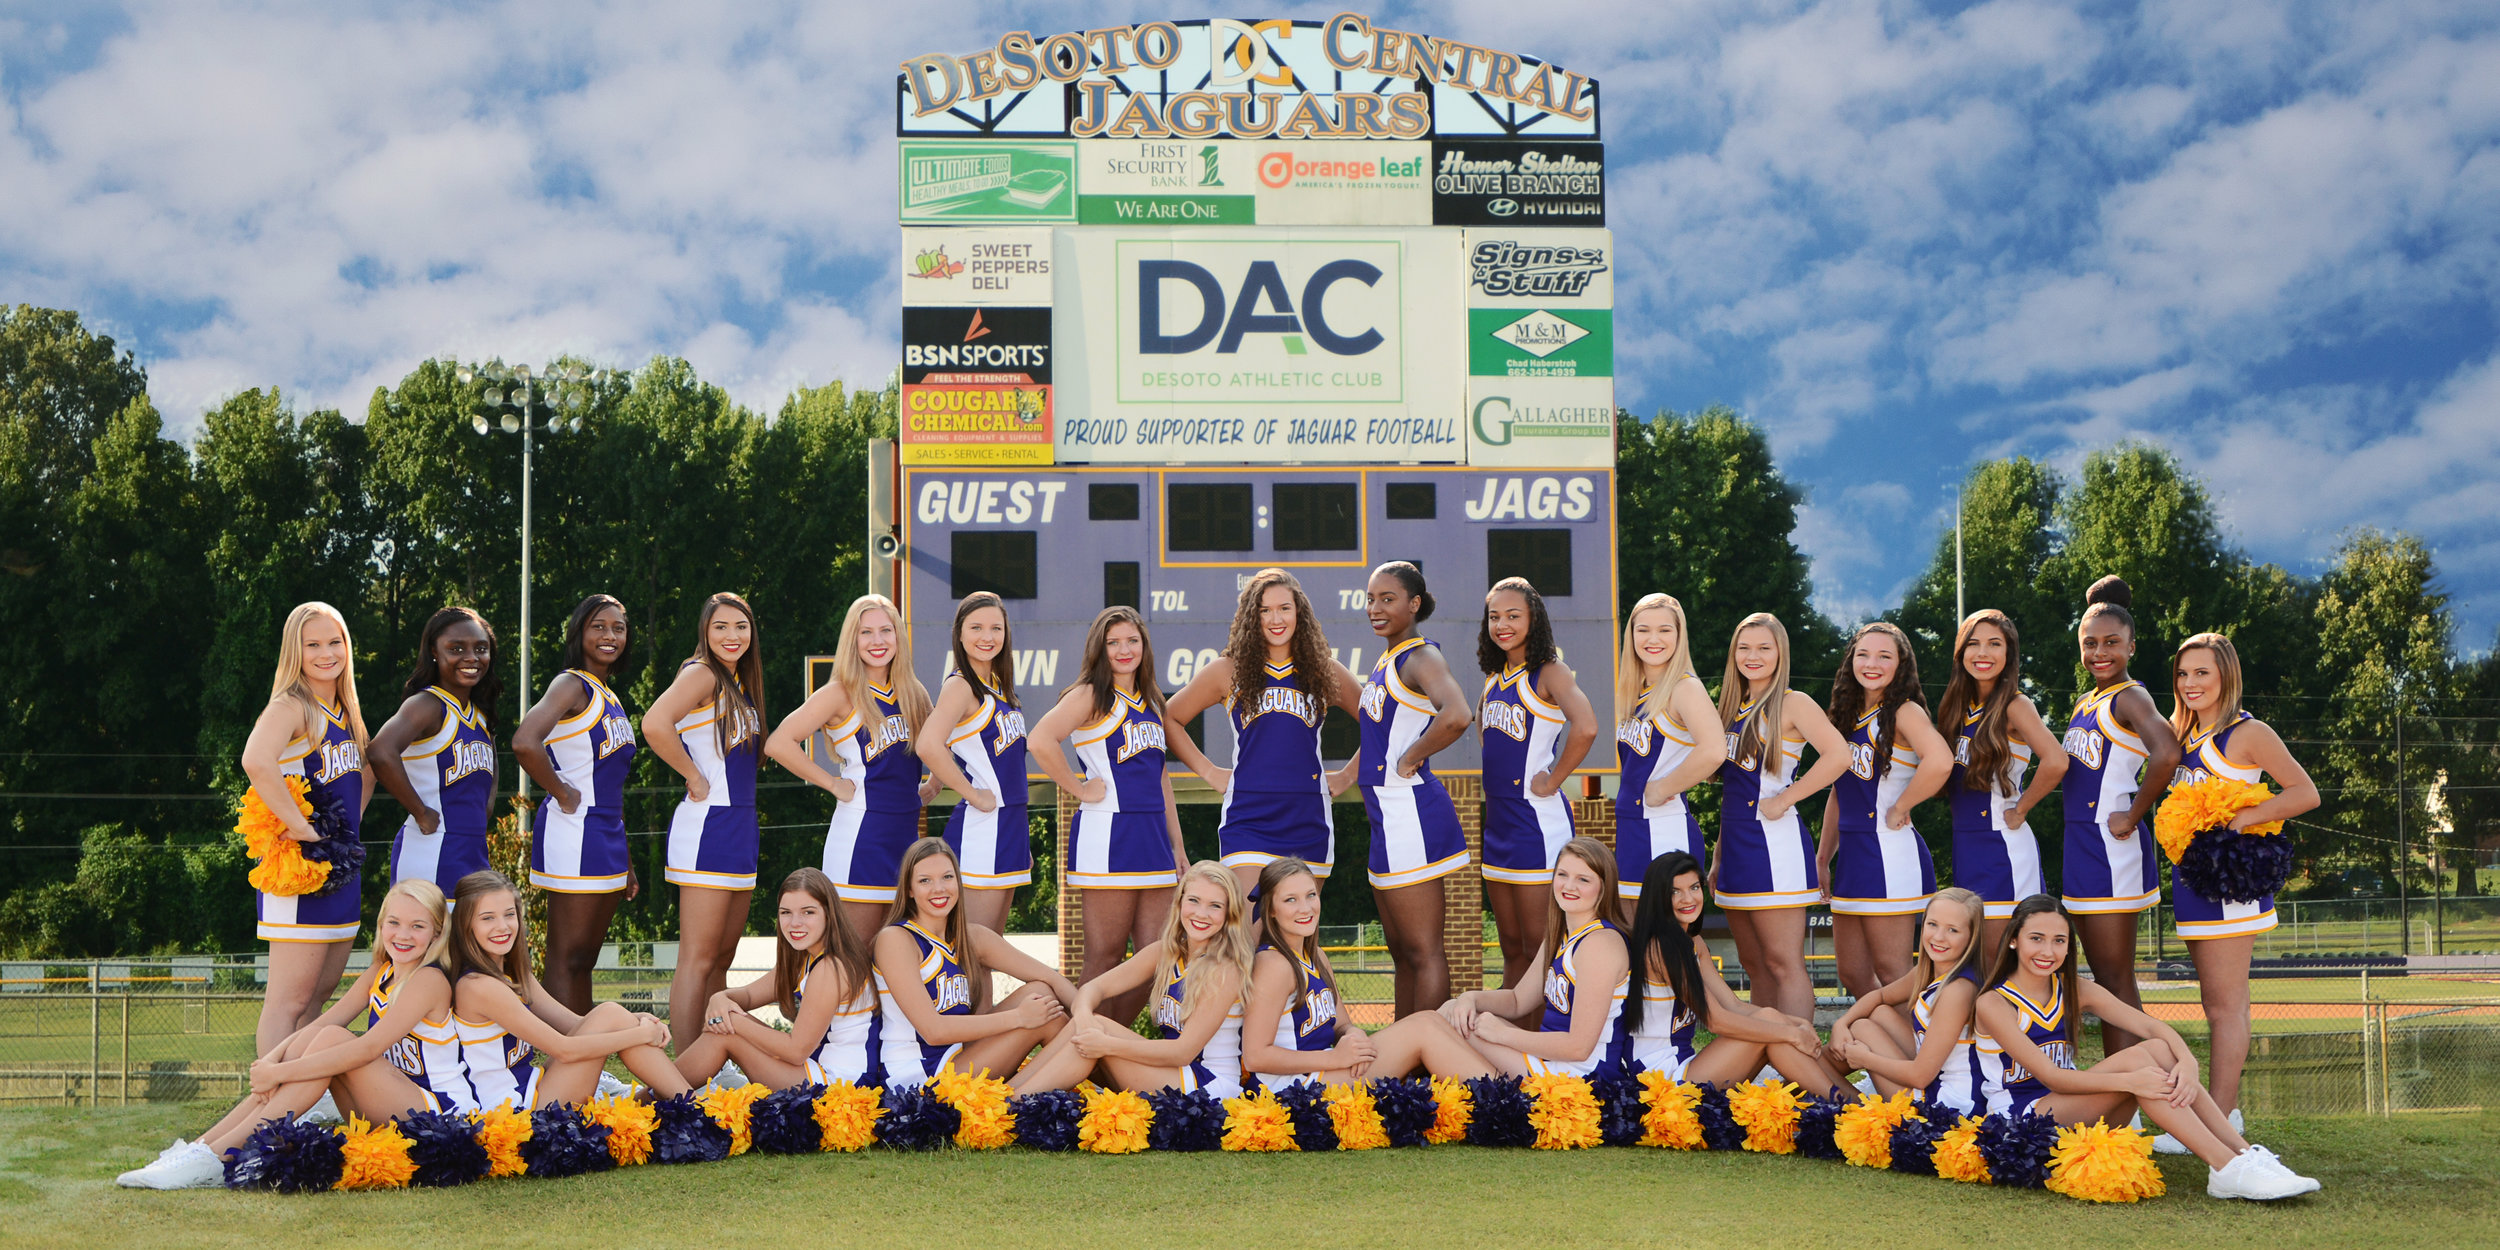 DCHS squad cheer pic 2018-add  sky-4.jpg